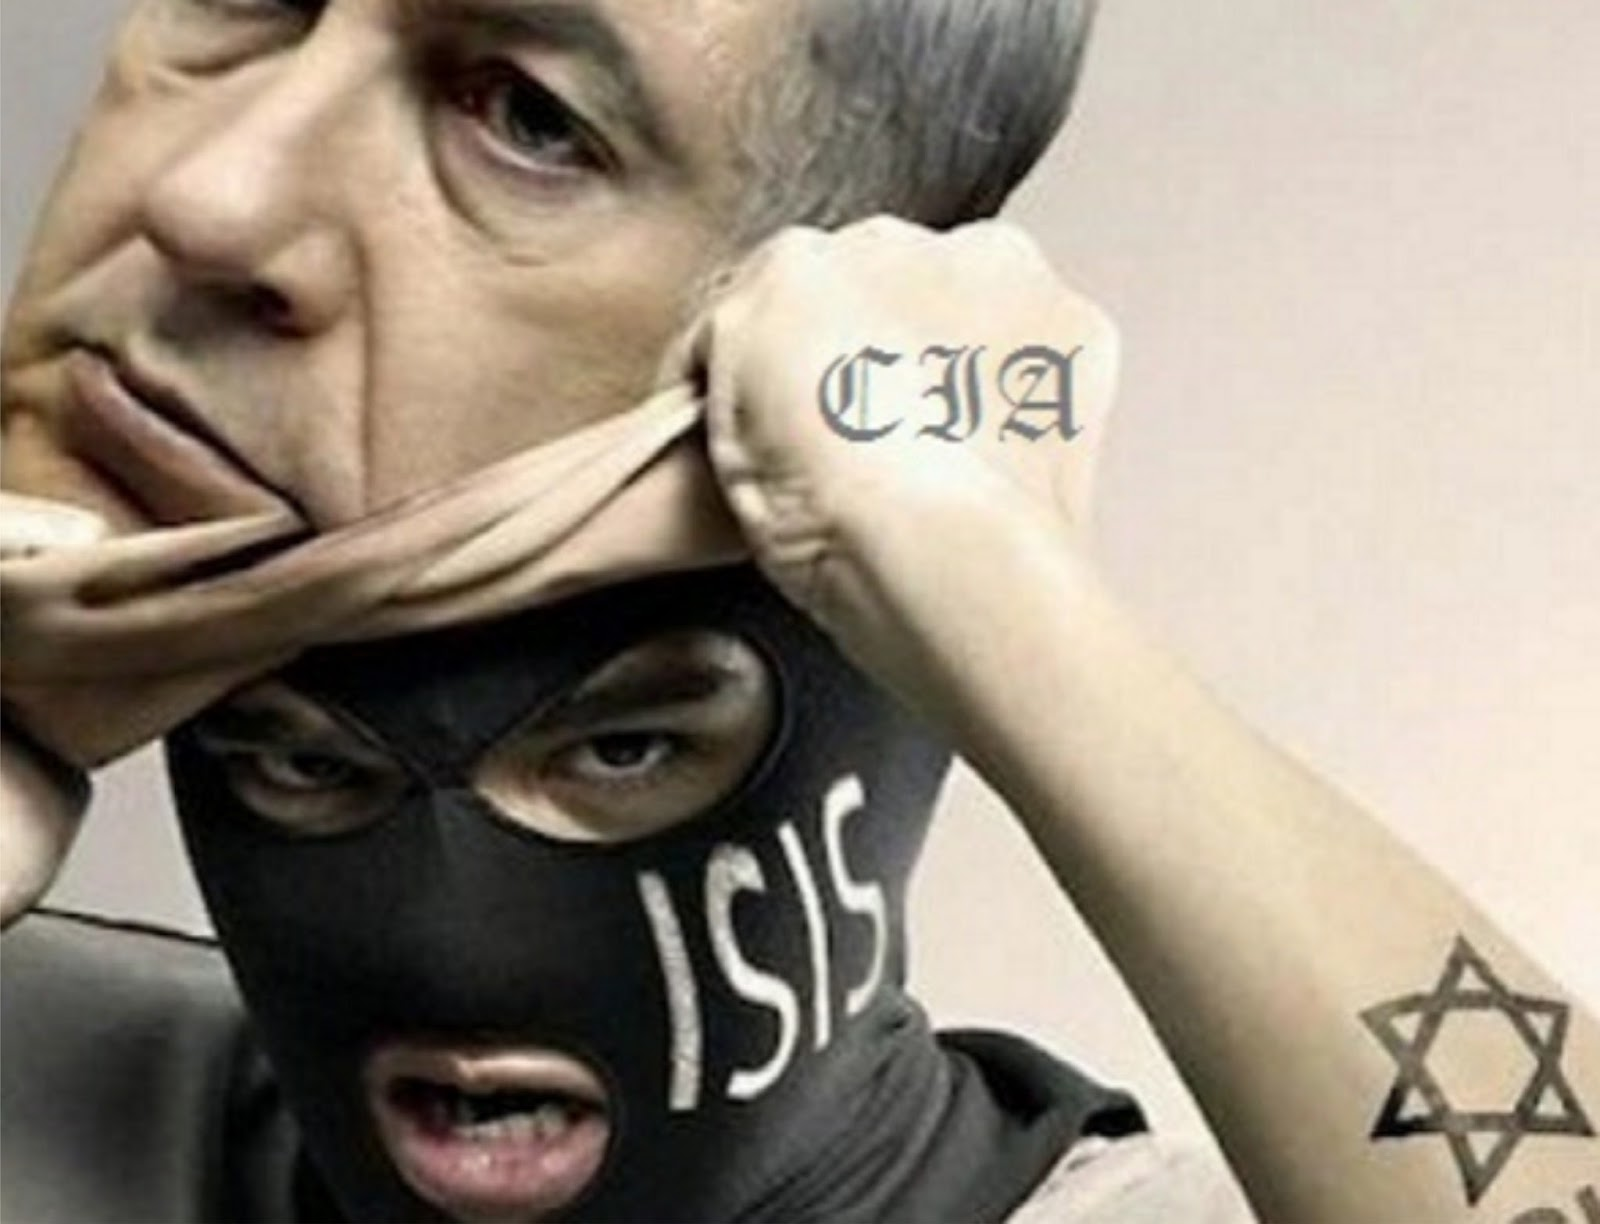 http://www.veteranstoday.com/2015/10/21/breaking-story-israeli-general-captured-in-iraq-confesses-to-israel-isis-coalition/